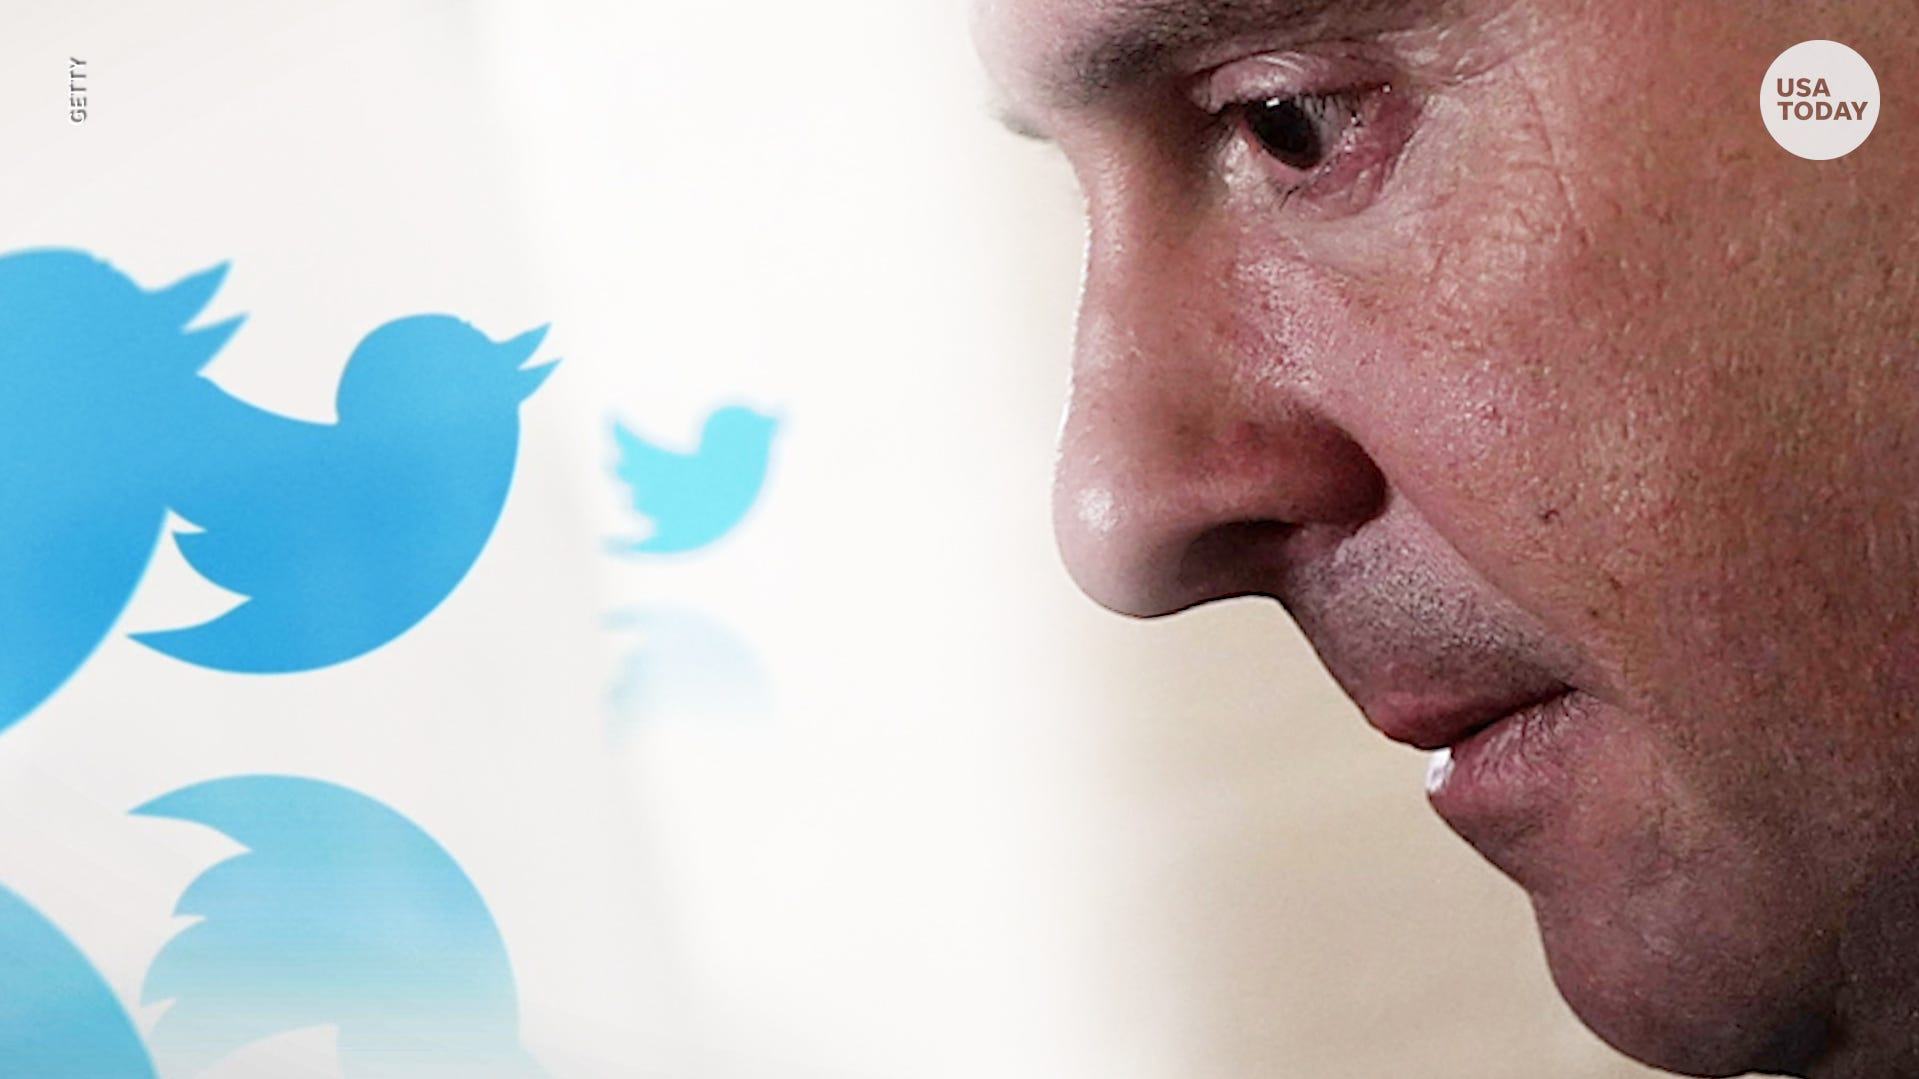 Republican Rep. Devin Nunes of California is suing Twitter over defamation.